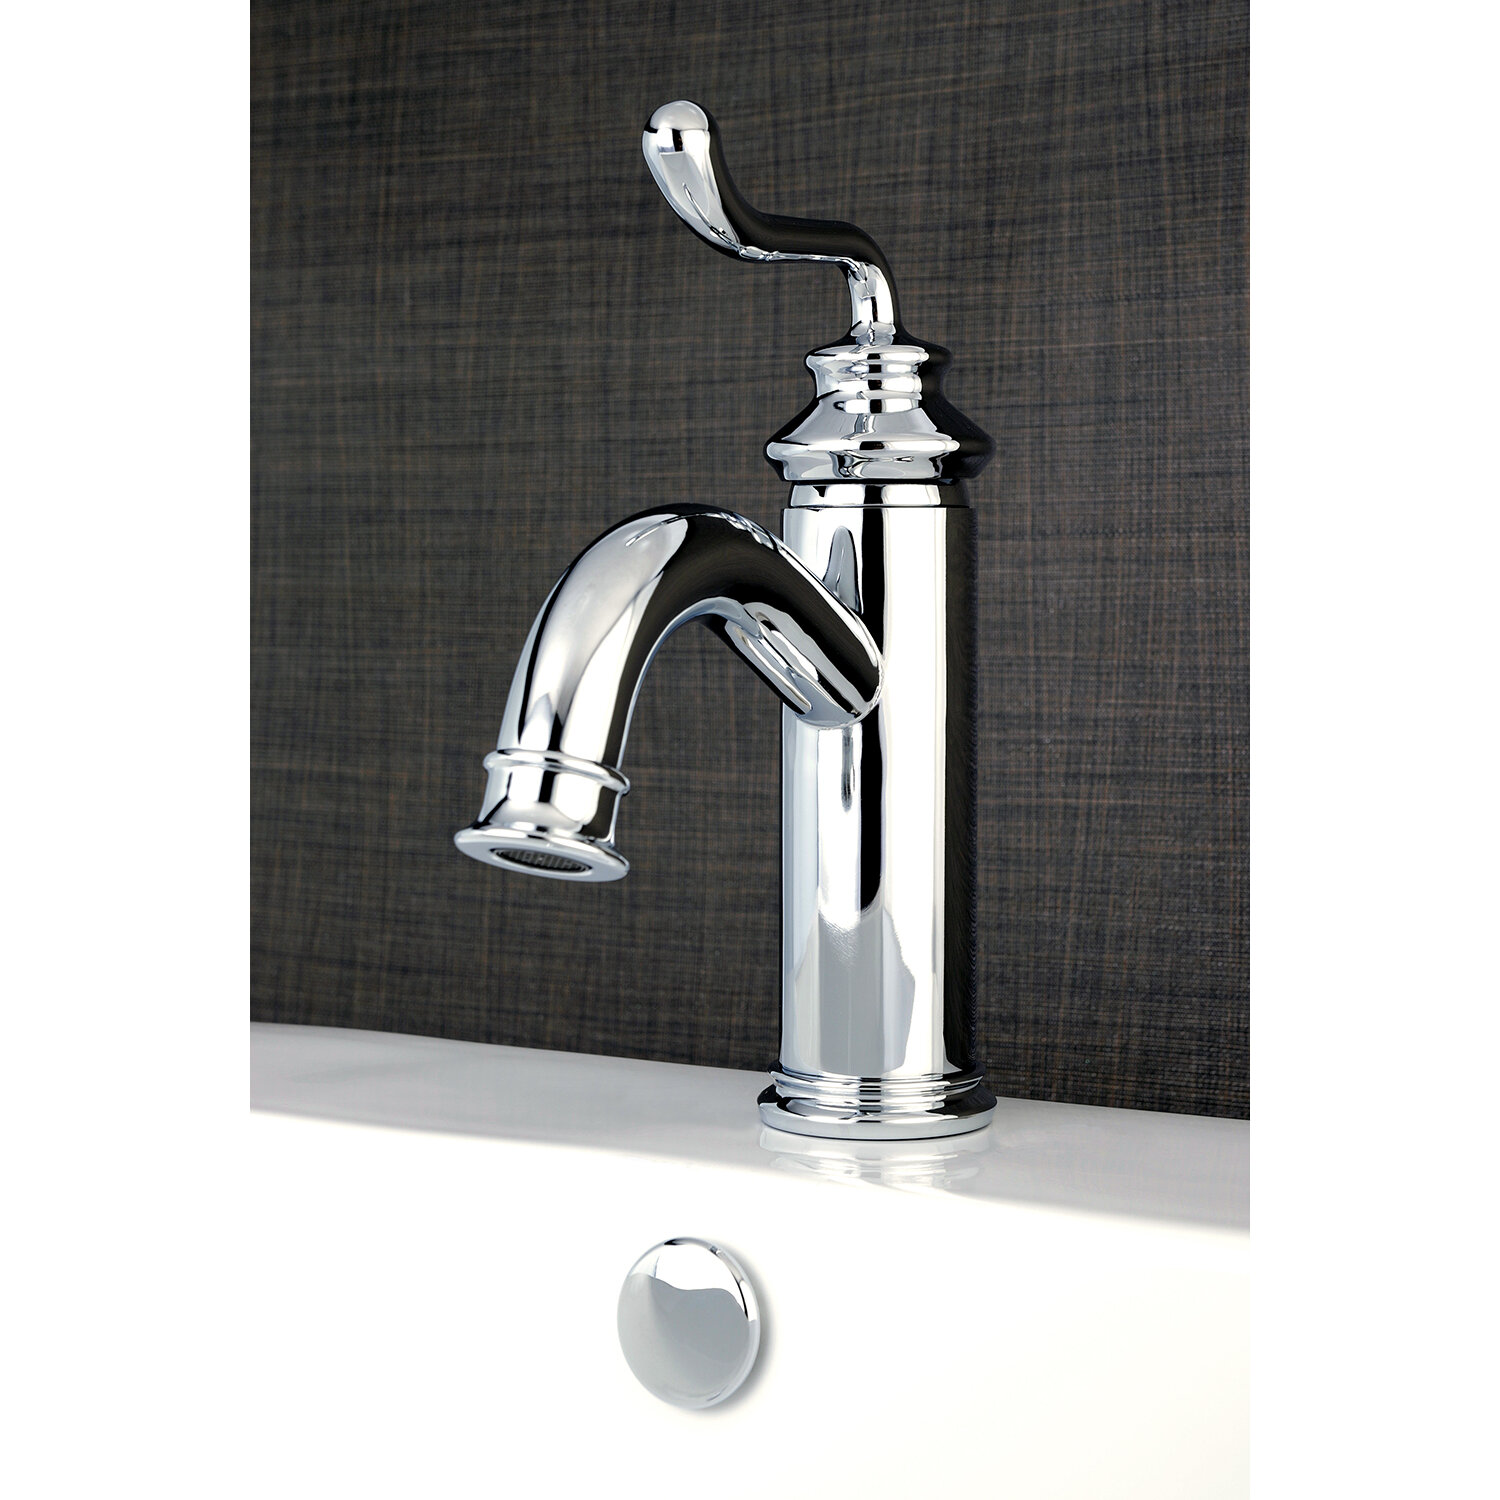 Kingston Brass Royale 1 or 3 hole Bathroom Faucet with Drain ...